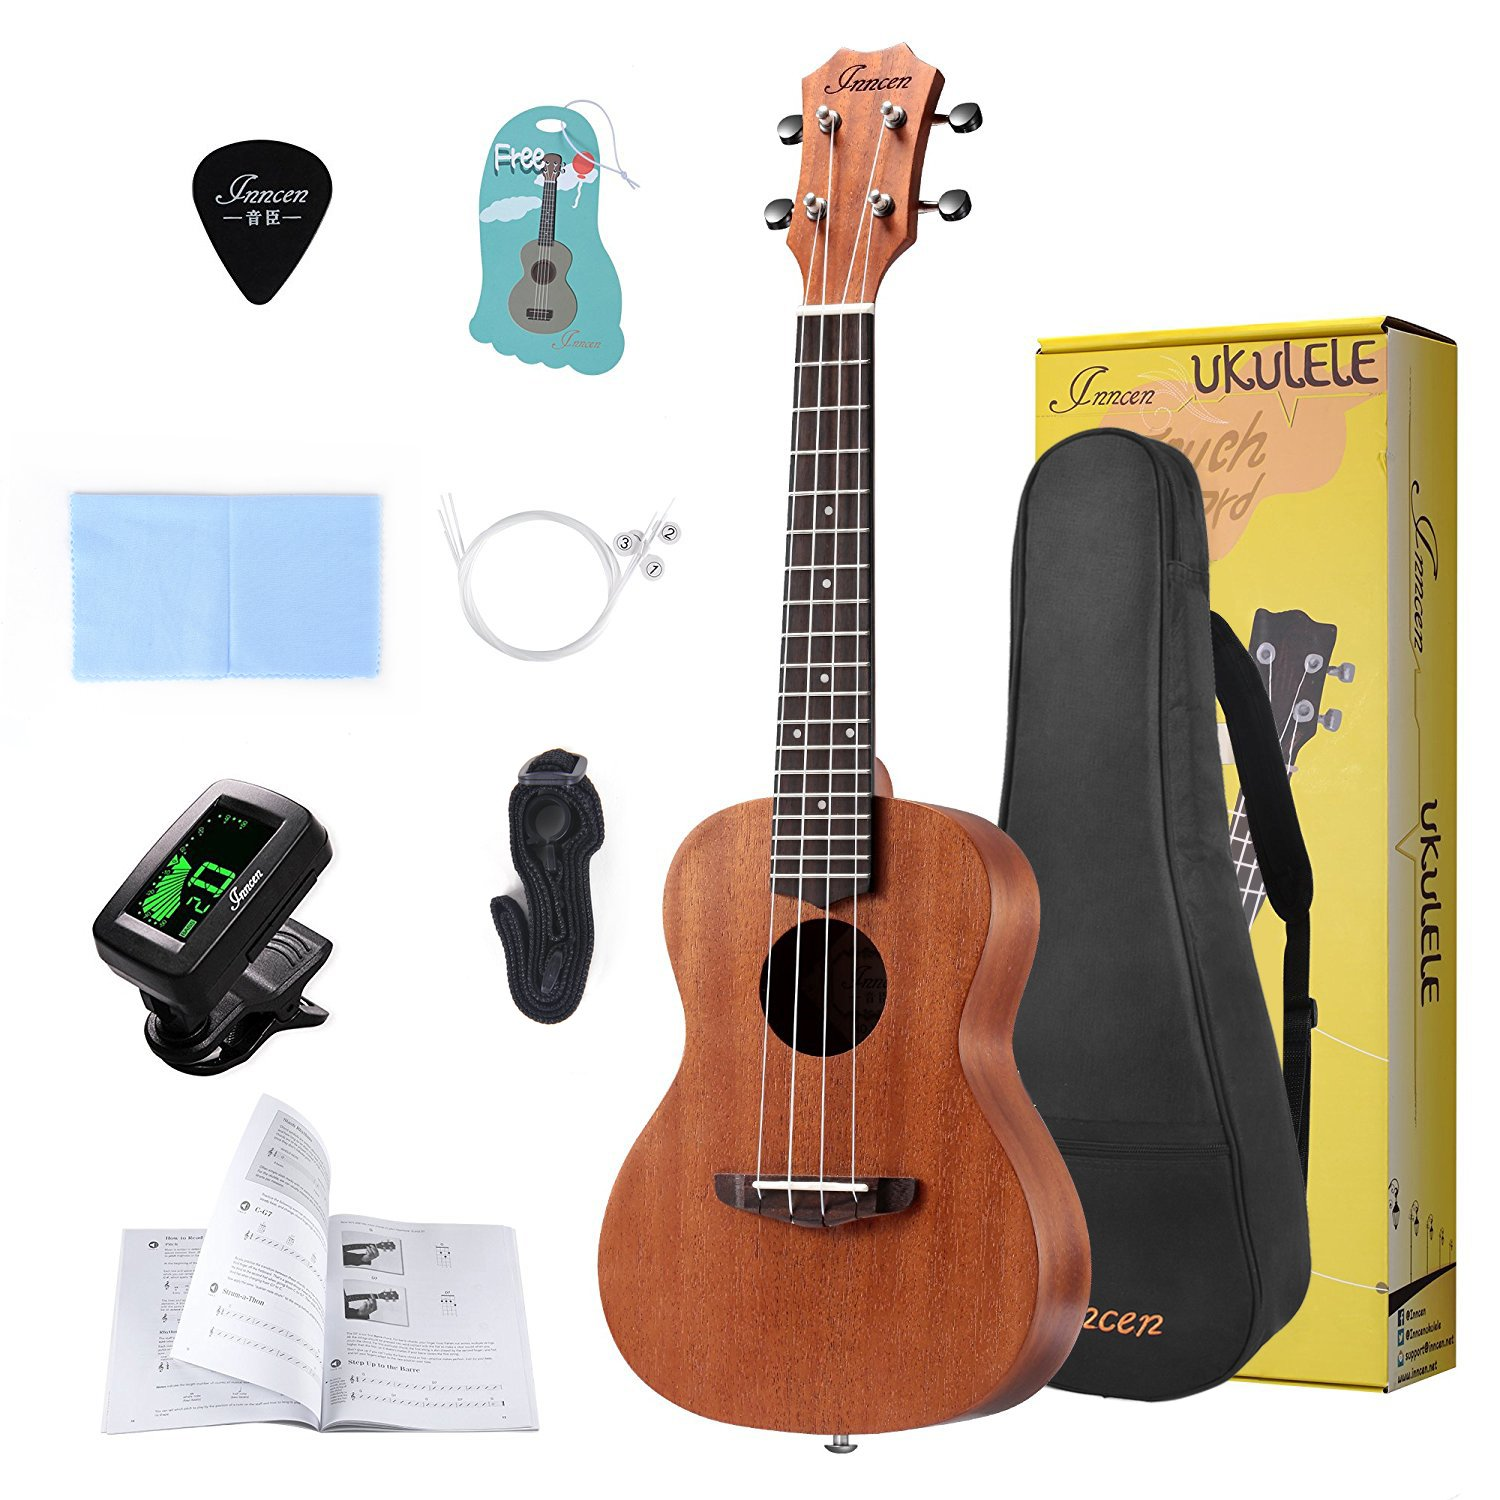 Concert Ukulele, 23 Inch Soprano Ukulele for Beginners, Waterproof Resistance Mahogany Ukuleles with Free Video Ukulele Lessons, Gig Bag, Tuner, Strap, String And Picks Inncen IN-01-01